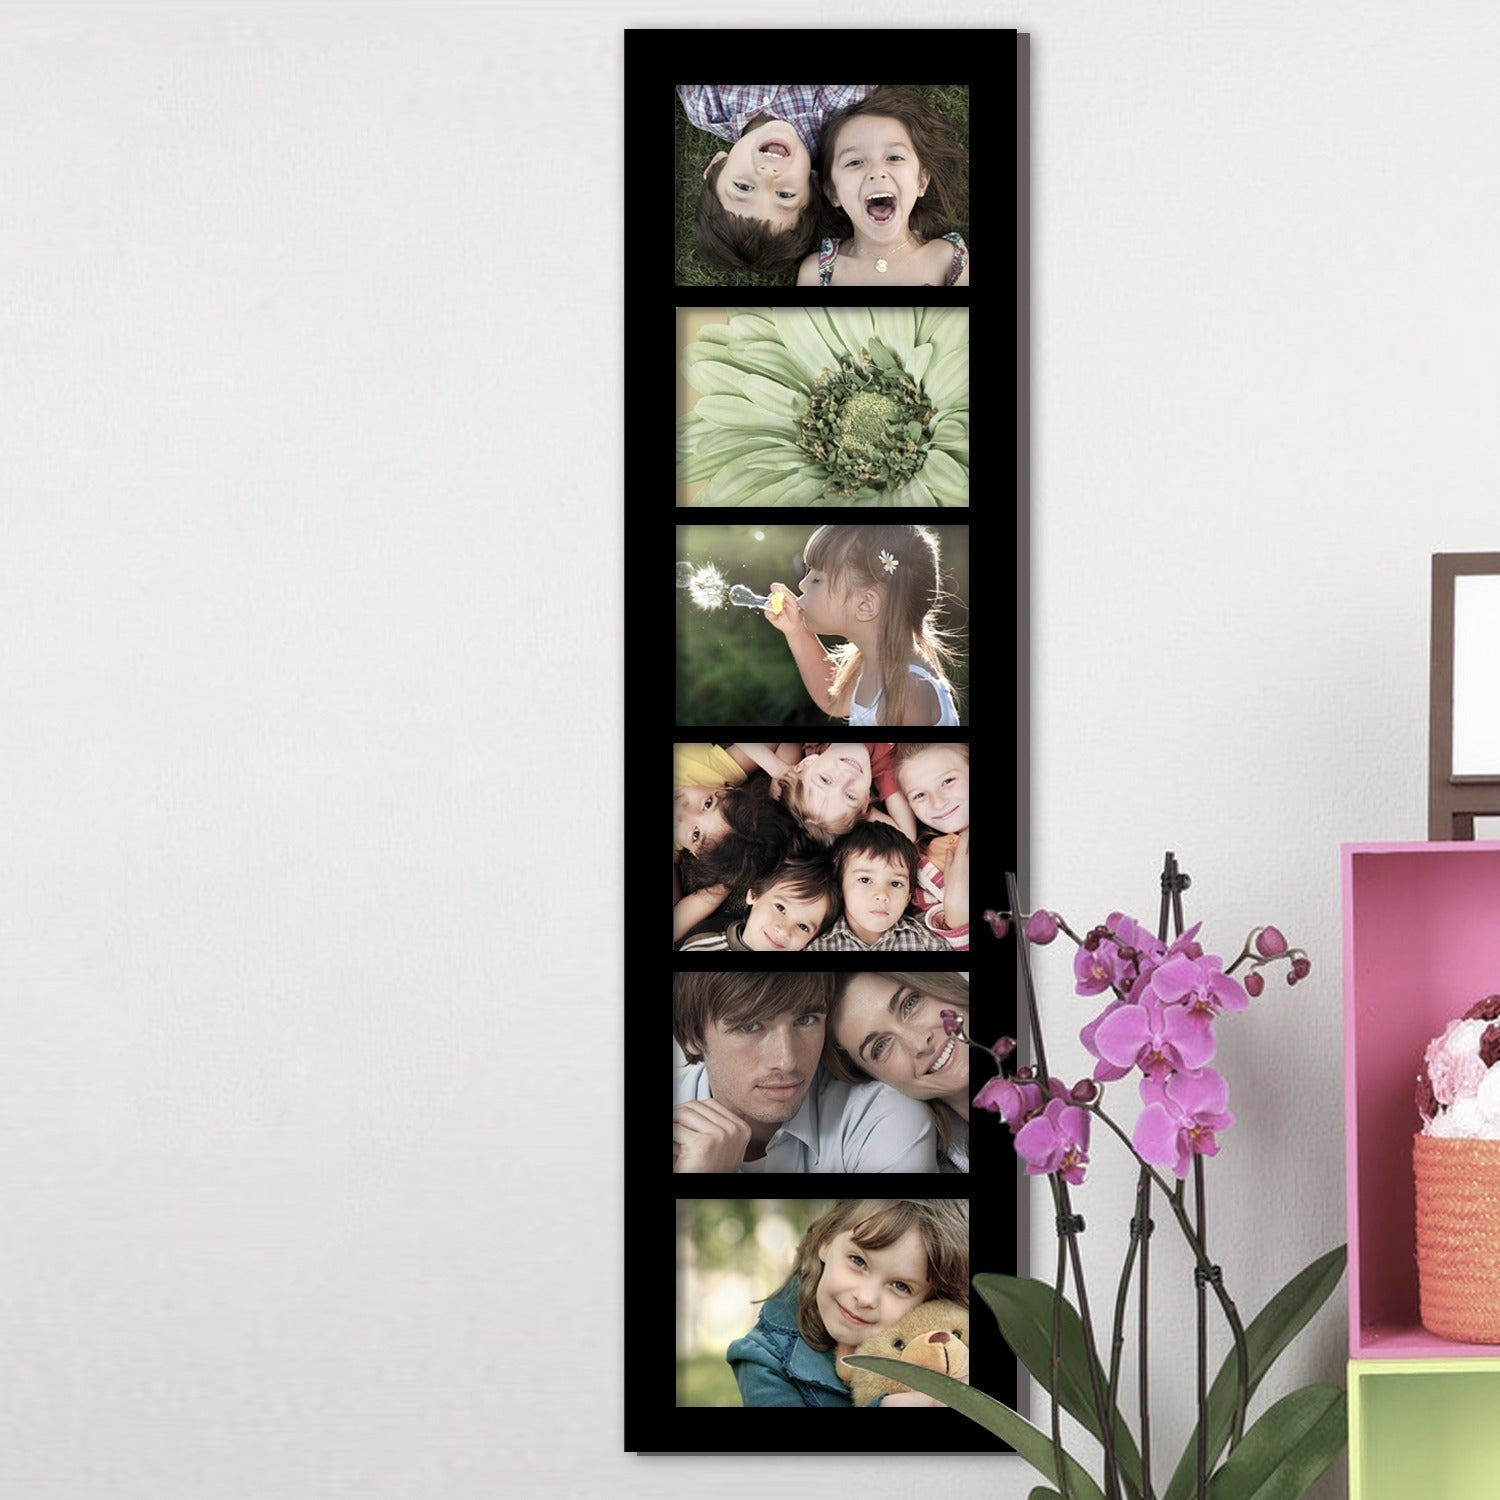 Adeco 6-opening Black 5x7 Collage Picture Frame (Black) (...